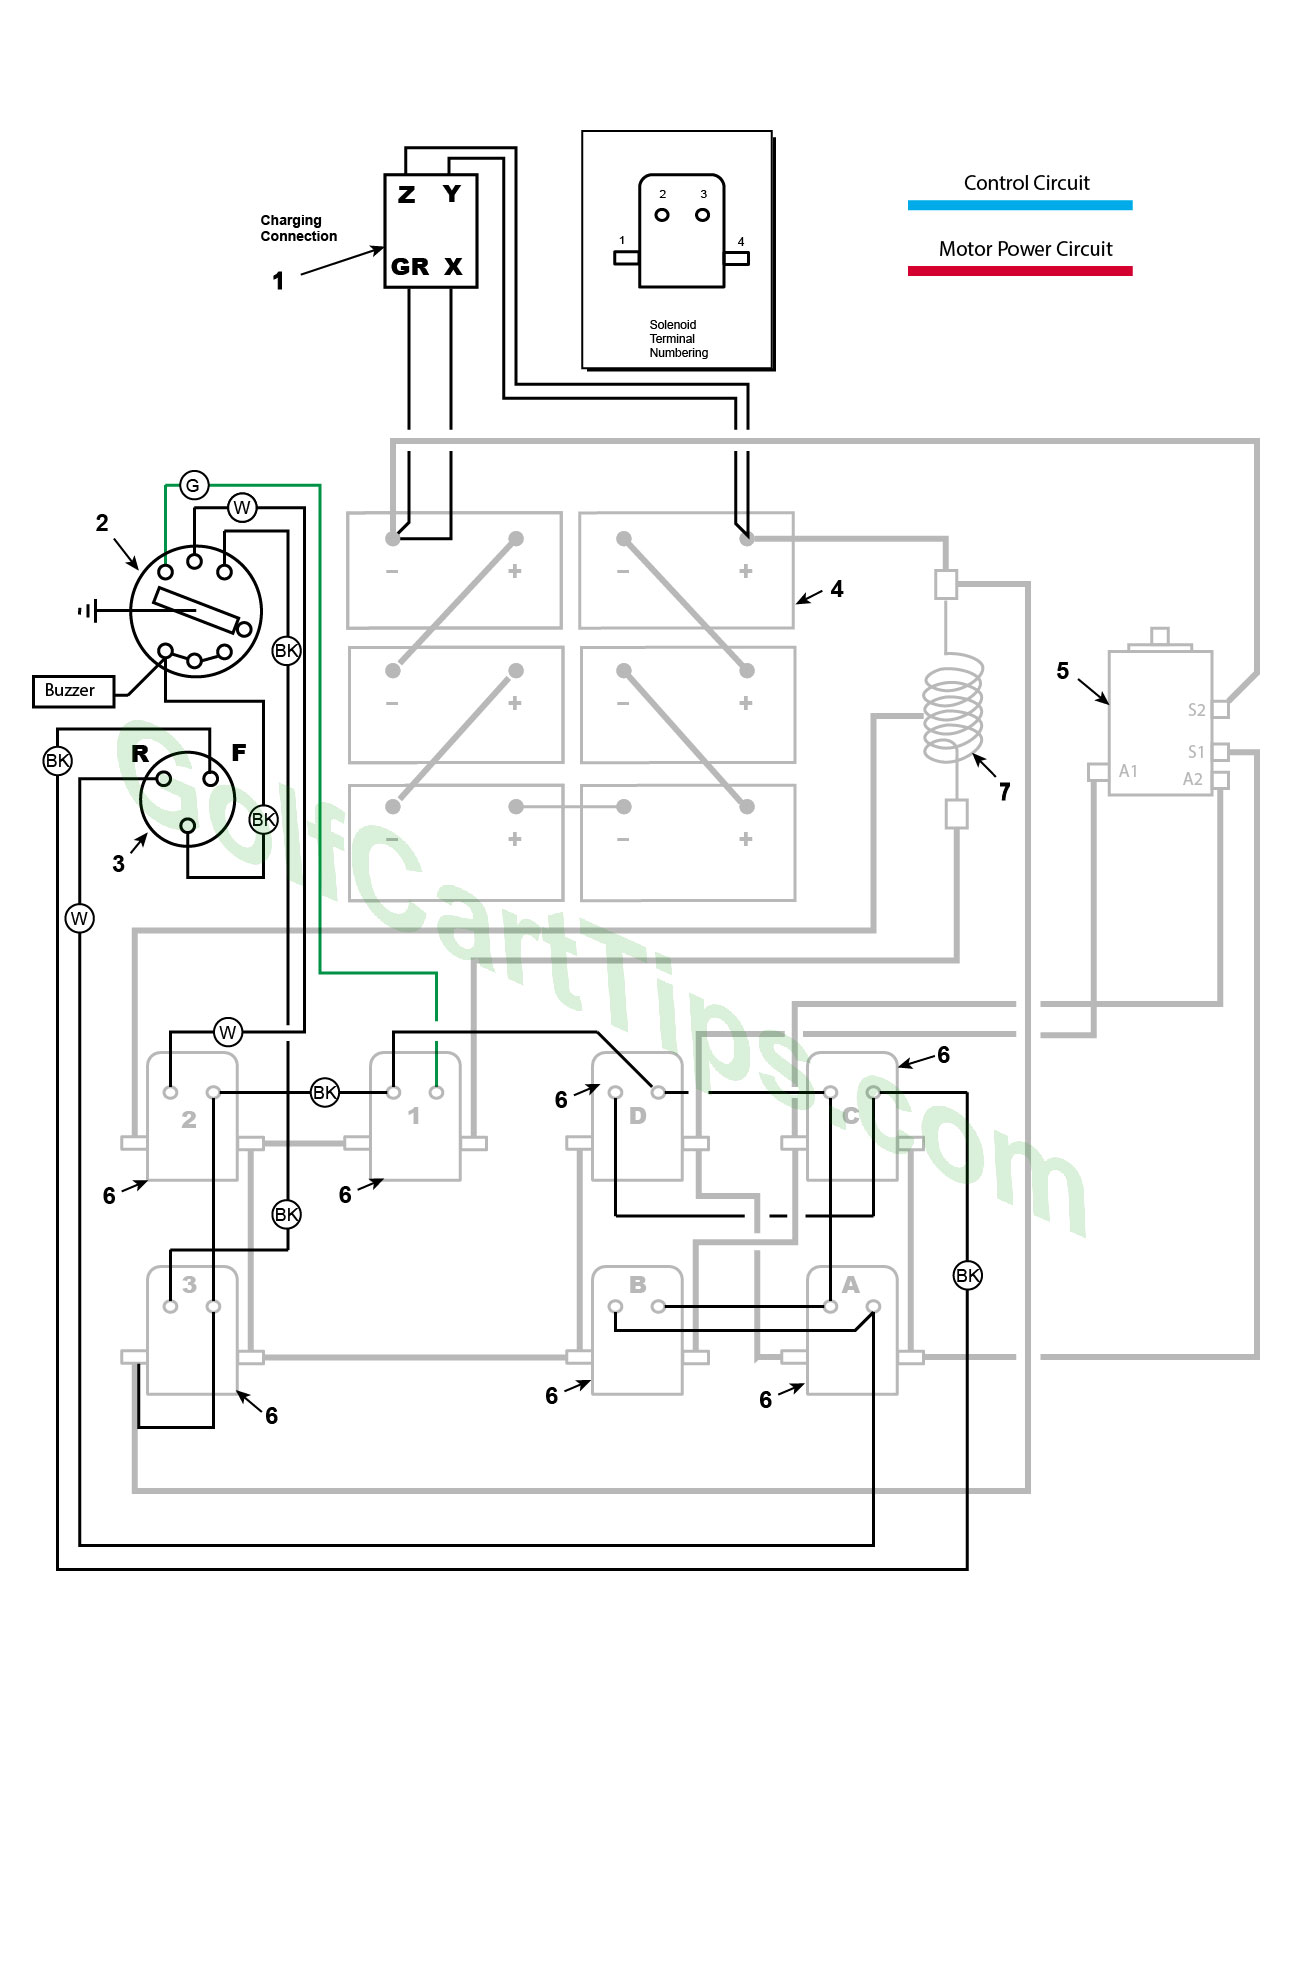 hight resolution of ezgo wiring diagrams model 300 late 1950 s 1996 ezgo golf cart wiring diagram ezgo buzzer wiring